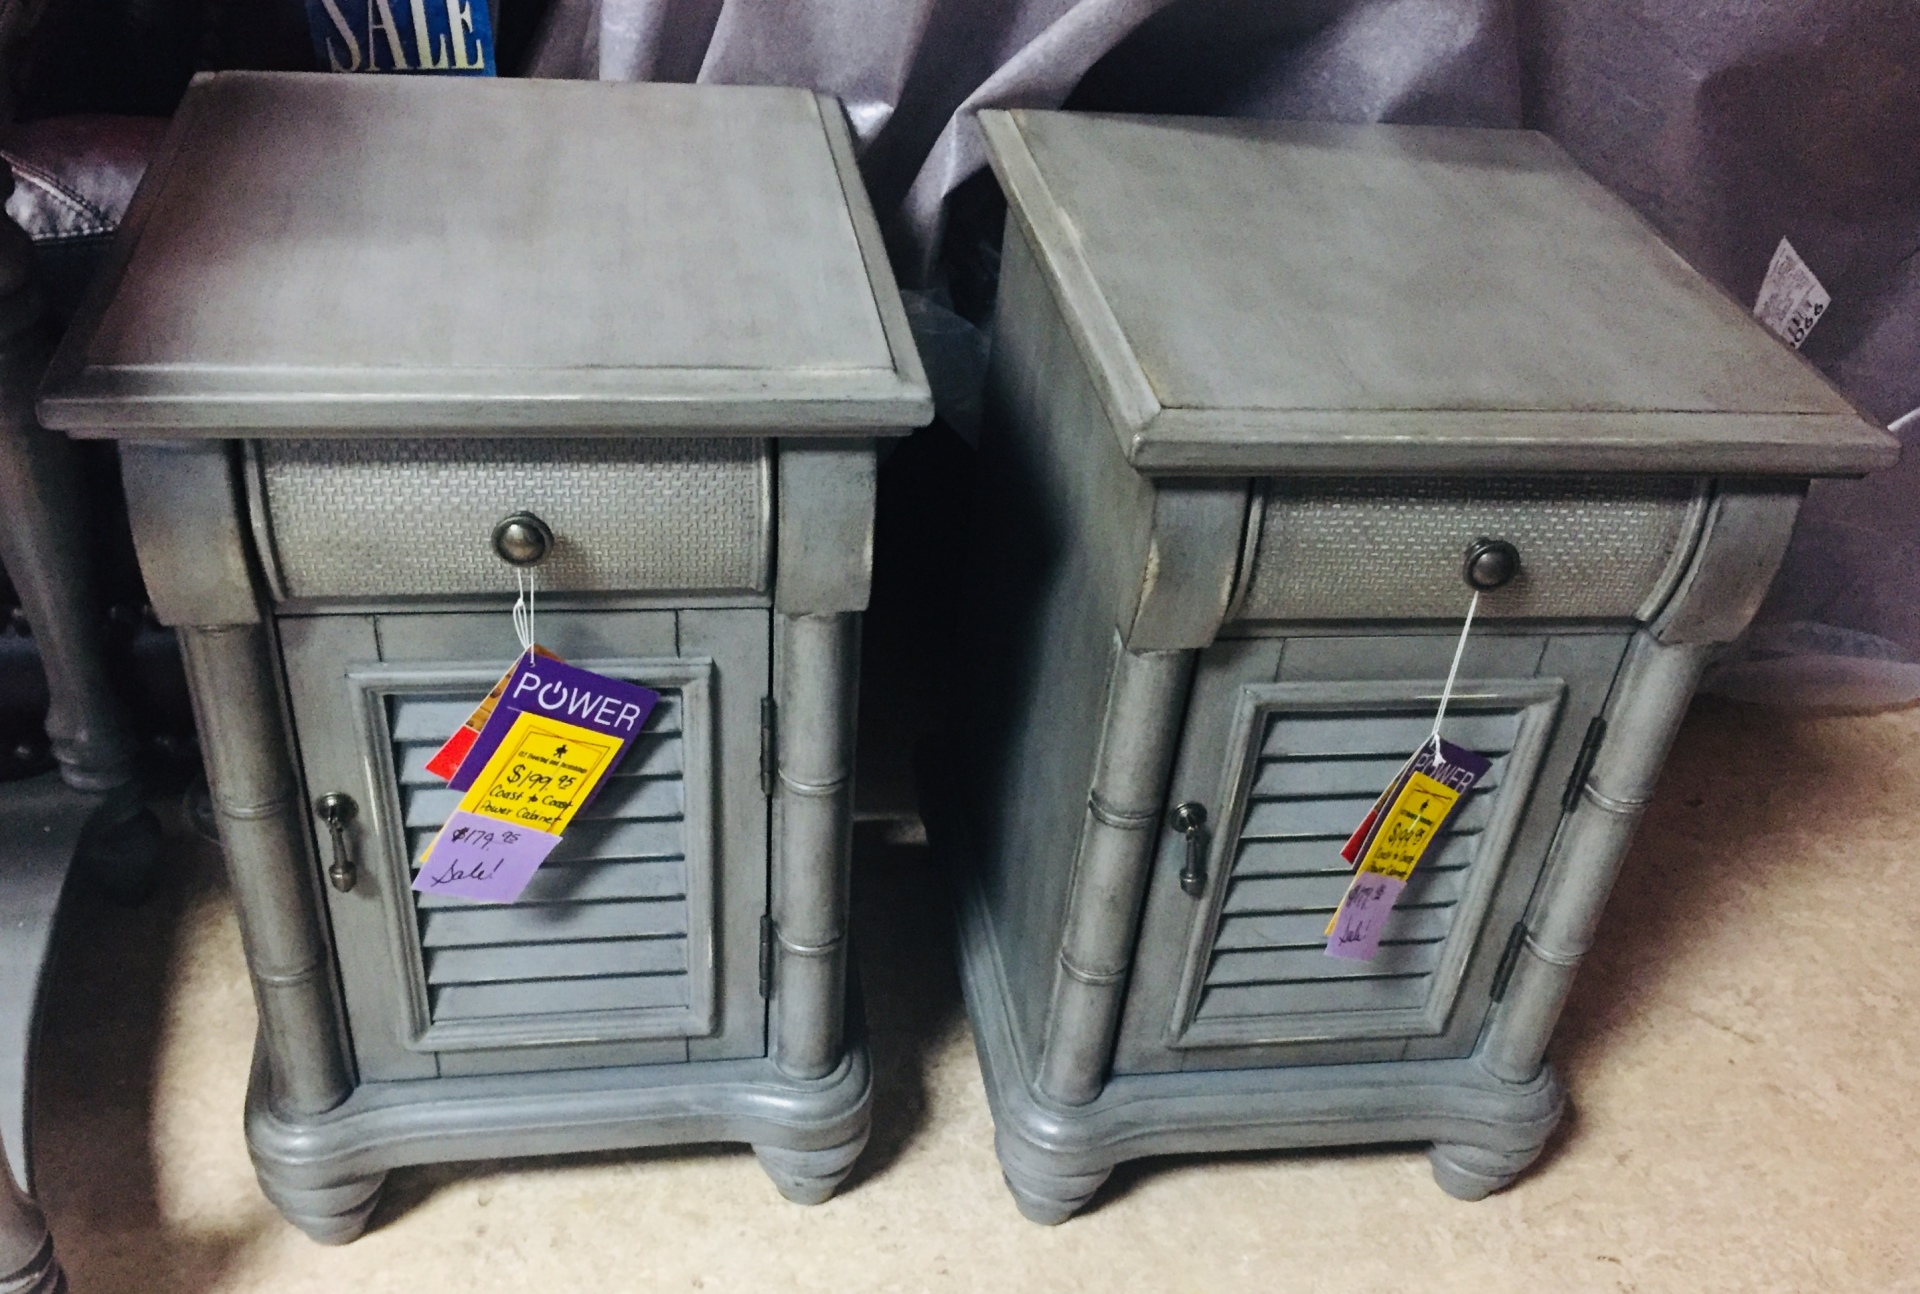 COAST TO COAST GREY POWER END TABLES (2 IN STOCK)